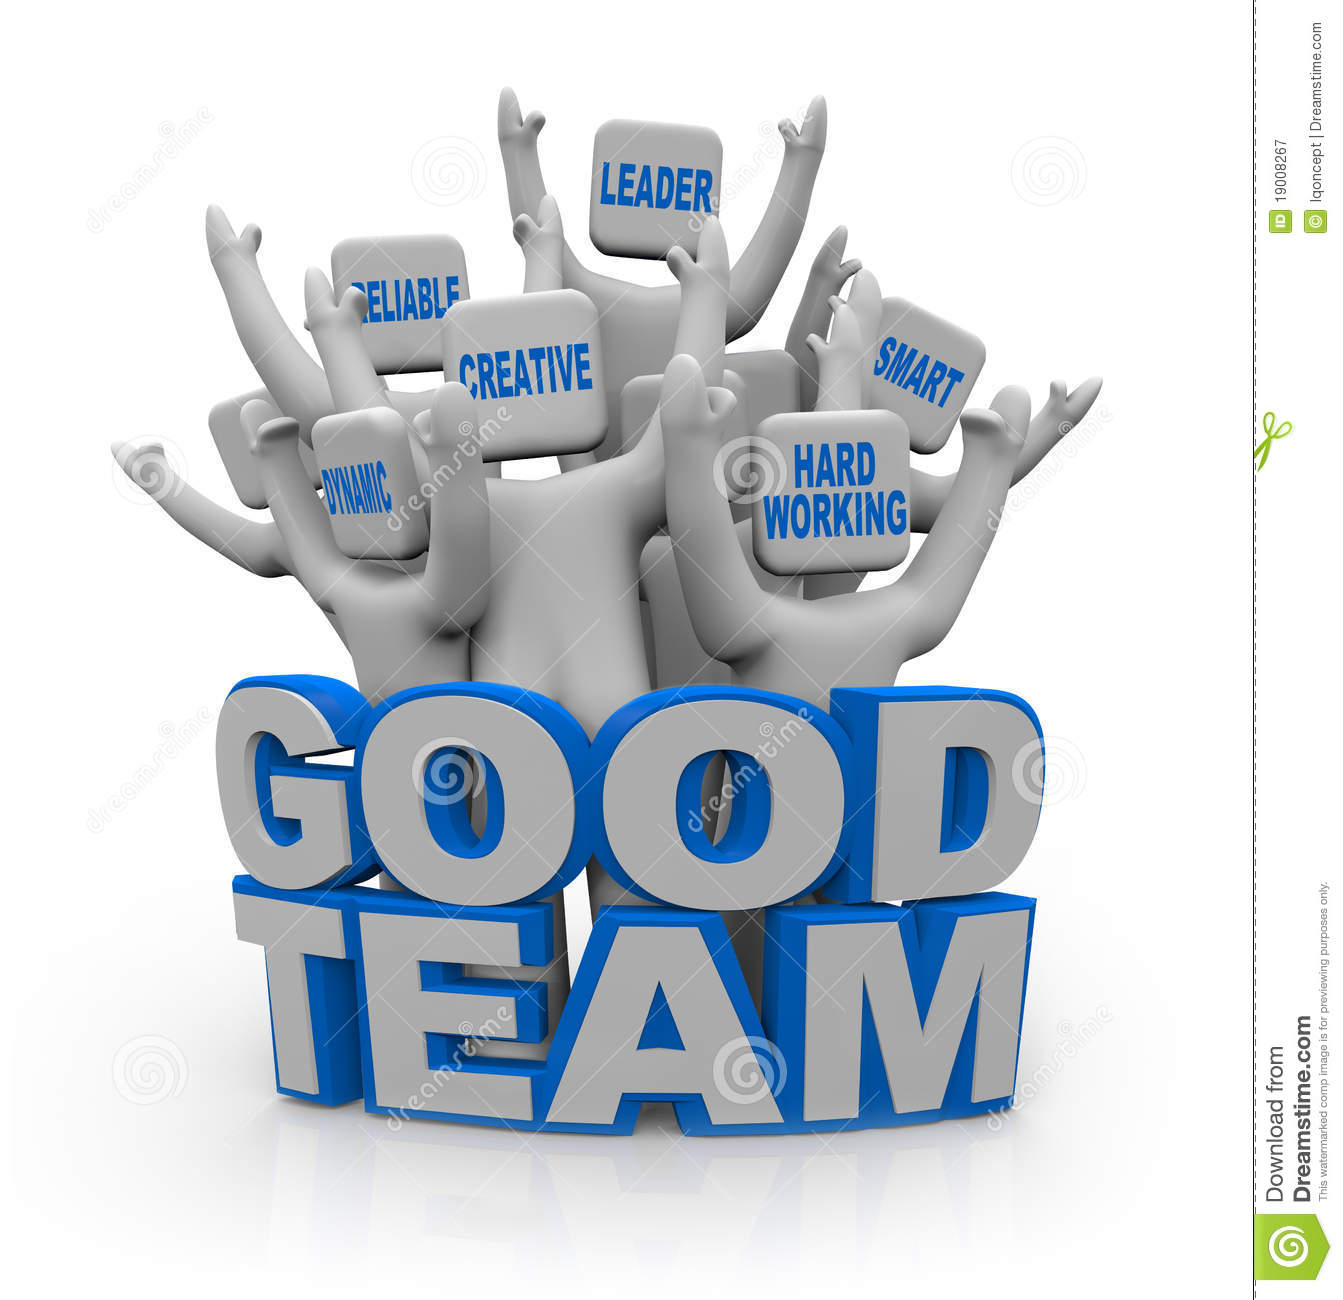 Free Stock Photography: Good Team - People with Teamwork Qualities